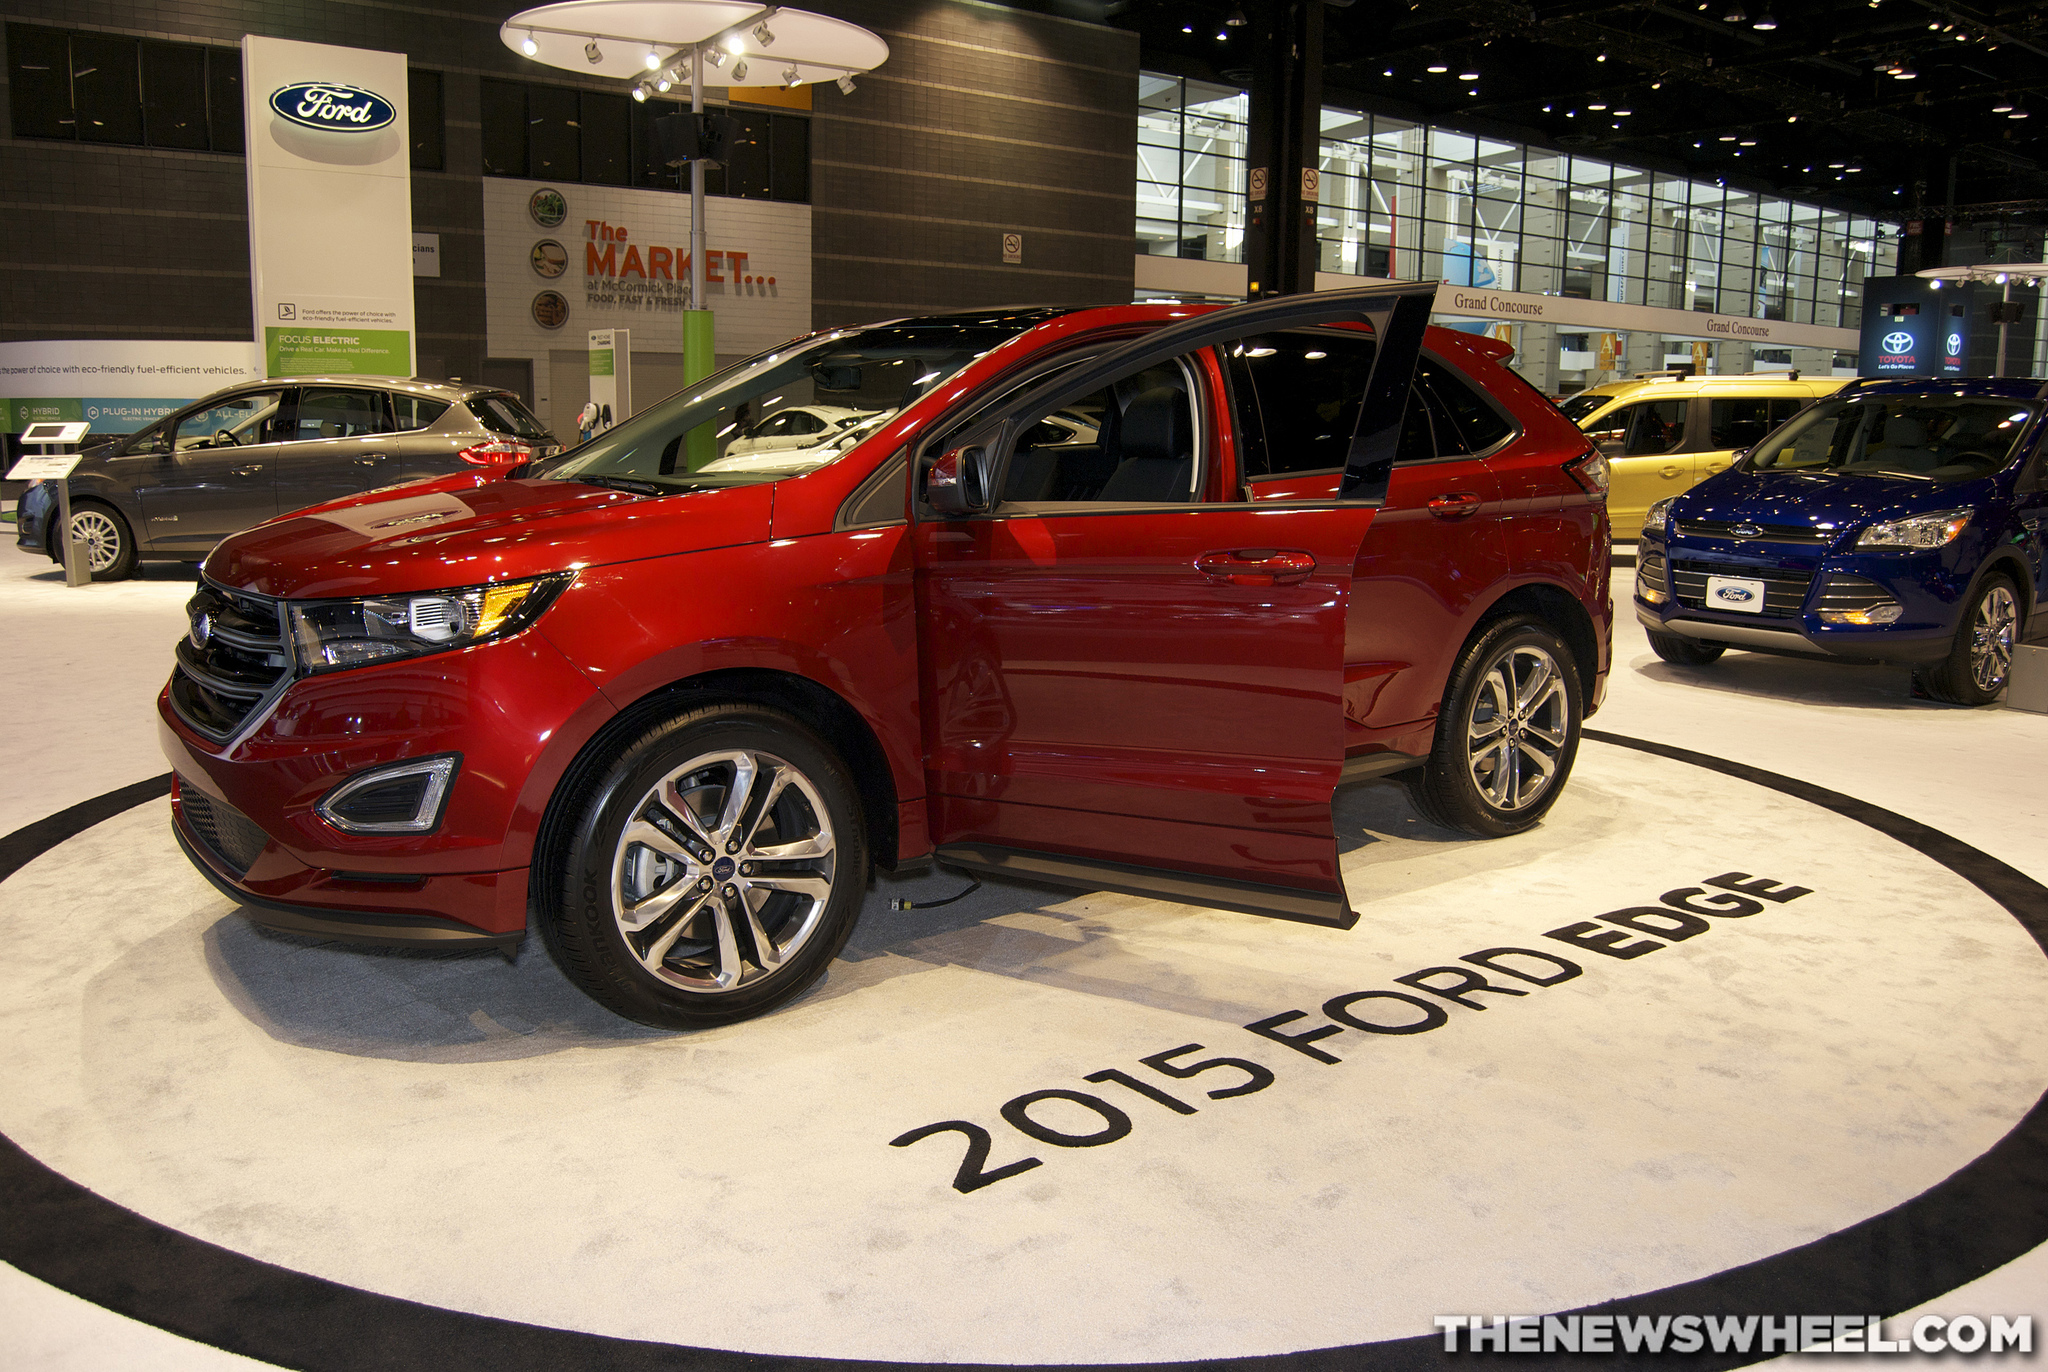 2015 Ford Edge production